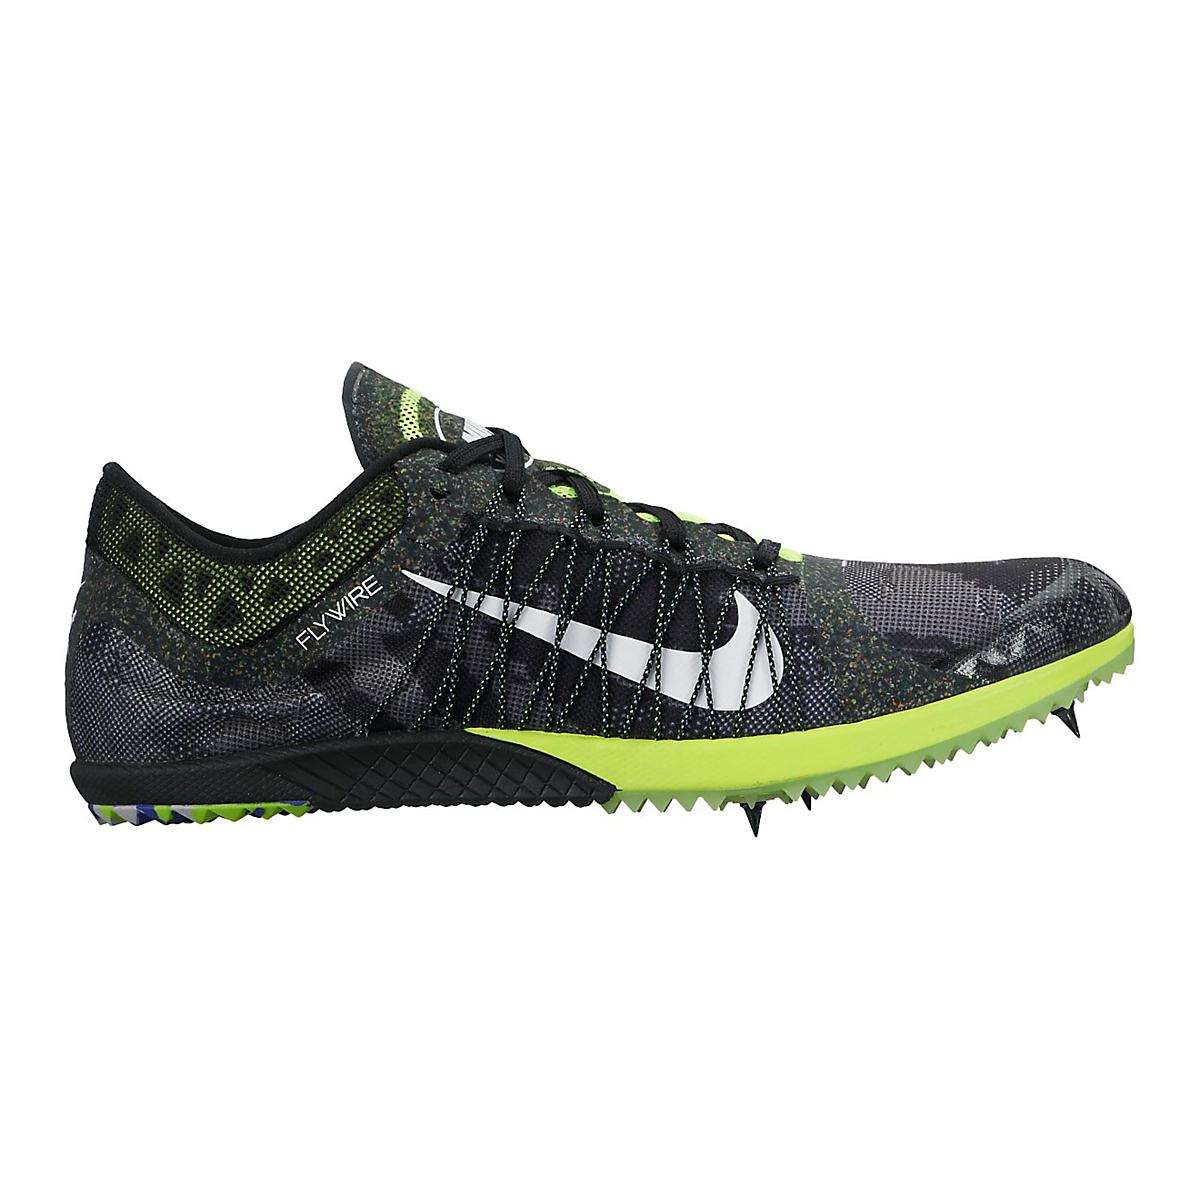 Nike Zoom Waffle Xc 10 Cross Country Shoe PriceMetrix PriceMetrix